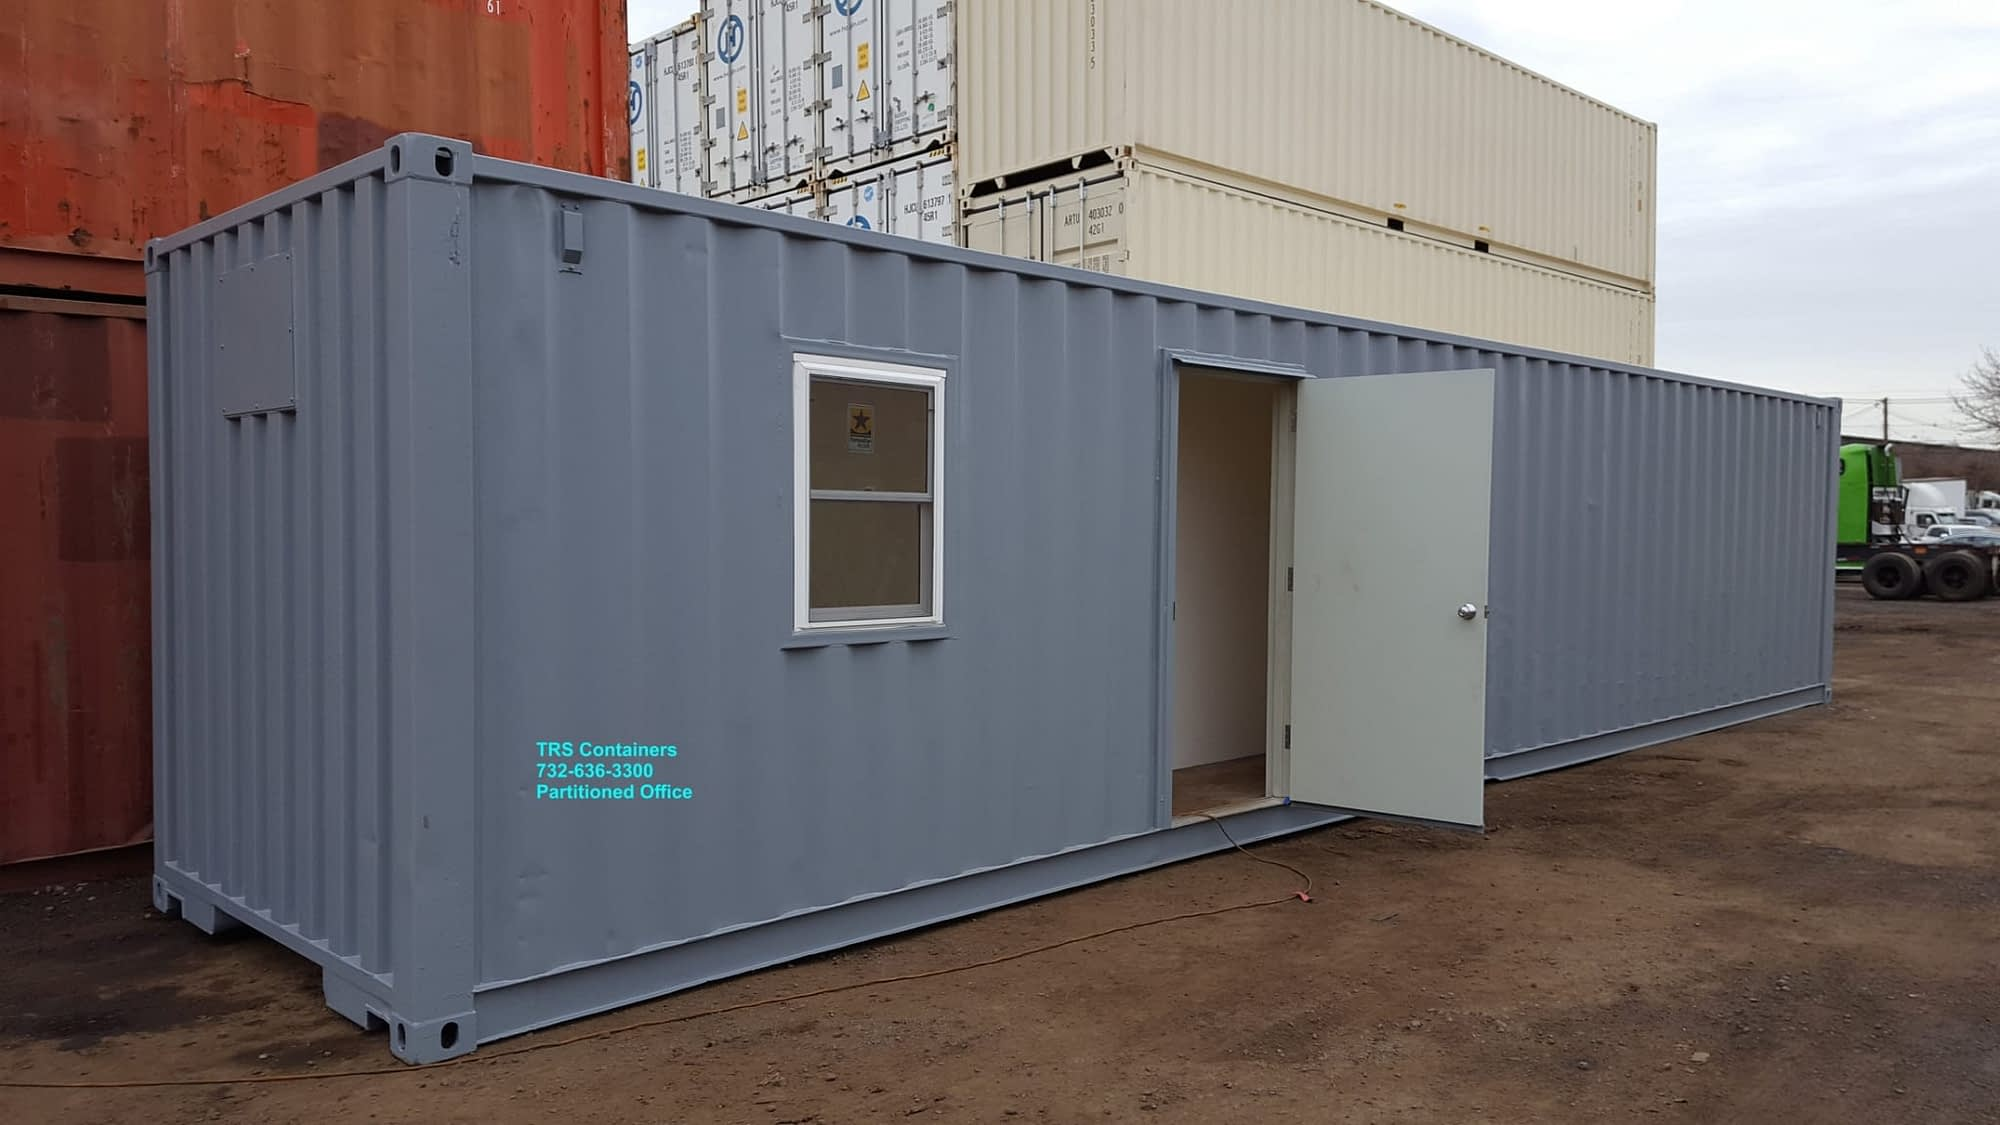 TRS Containers rents and sells modified ISO container space